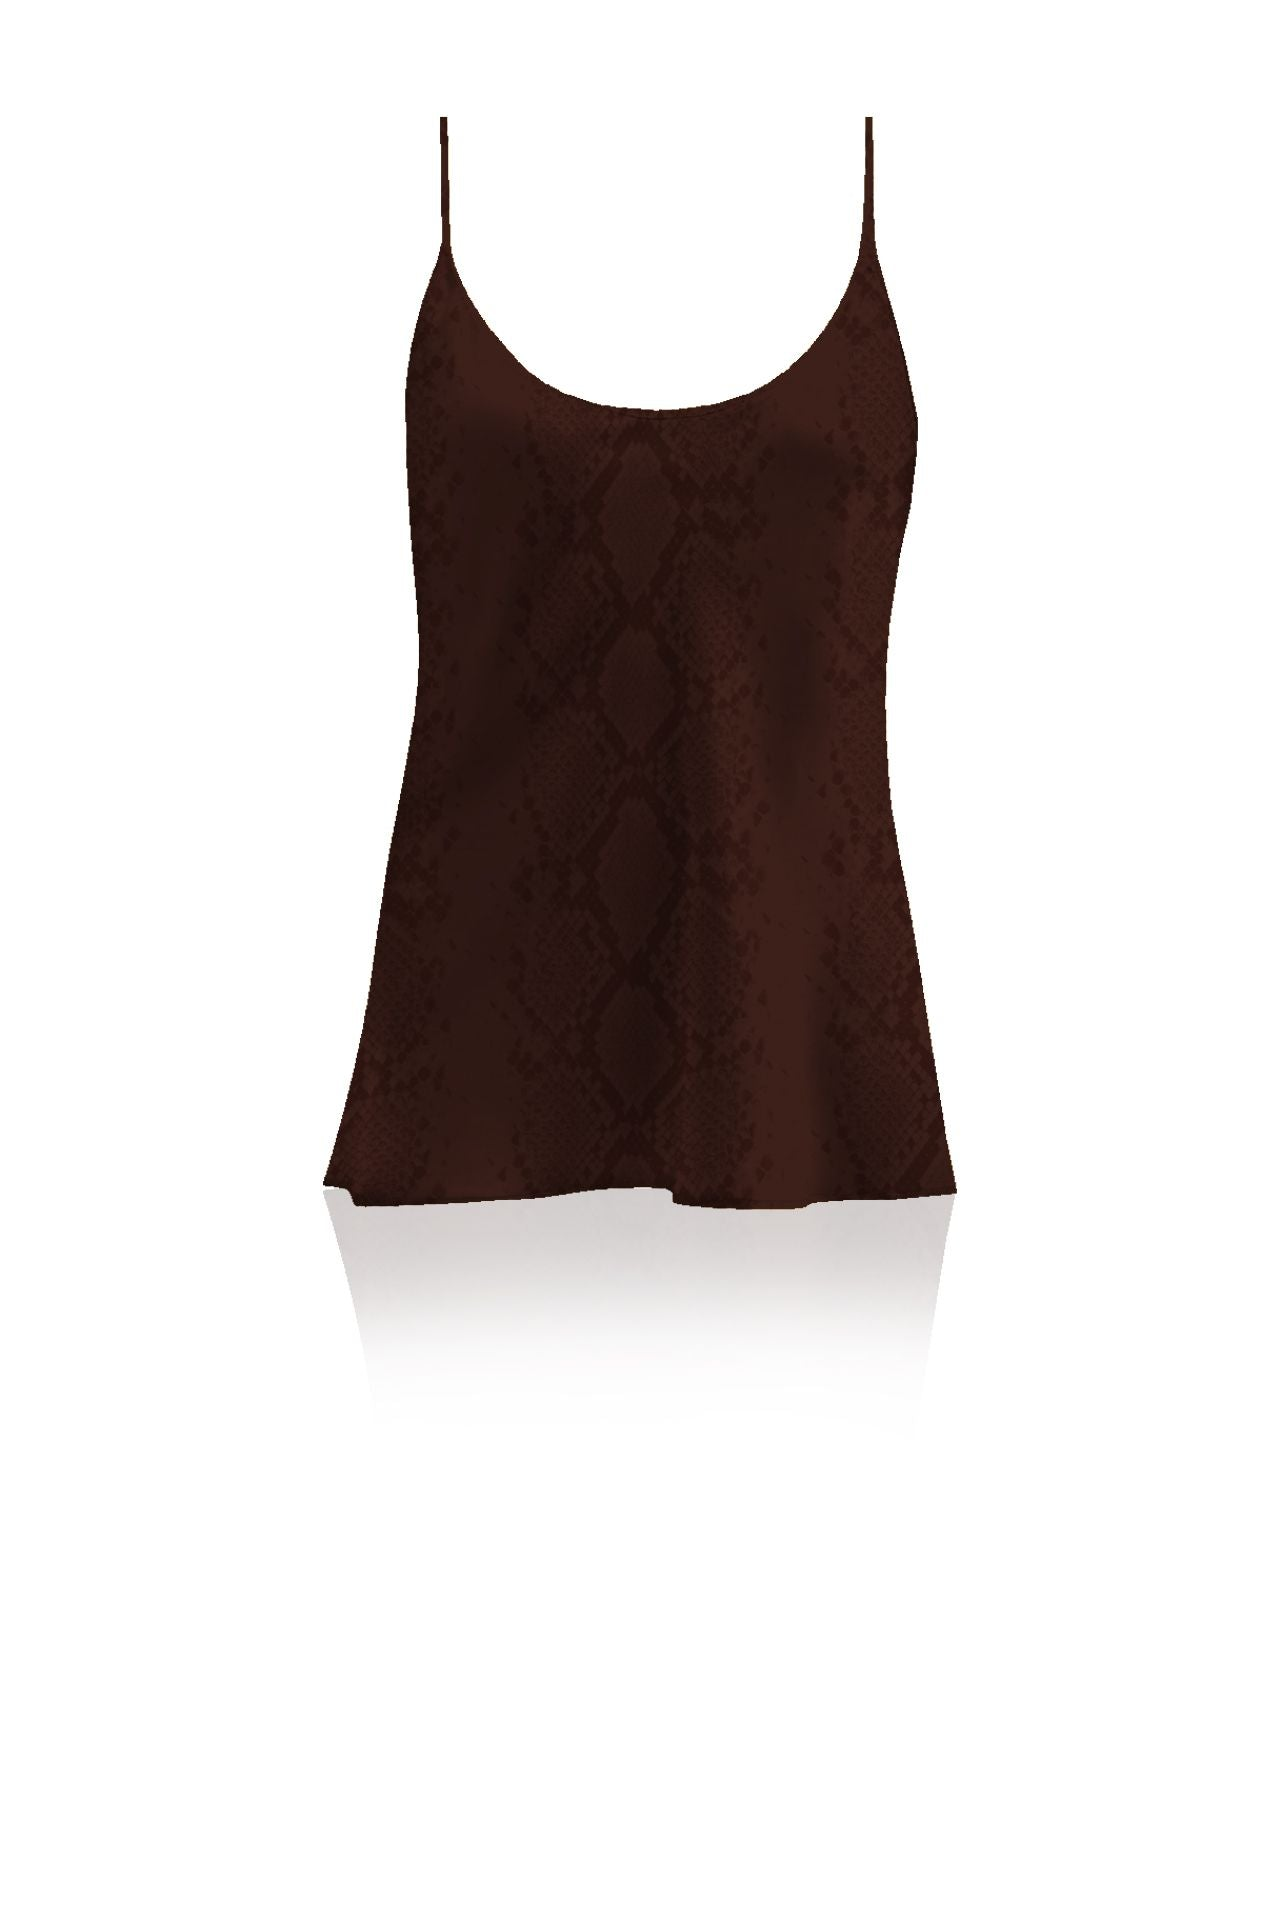 Made with Cupro Silk Camisole Top  in Golden Harvest